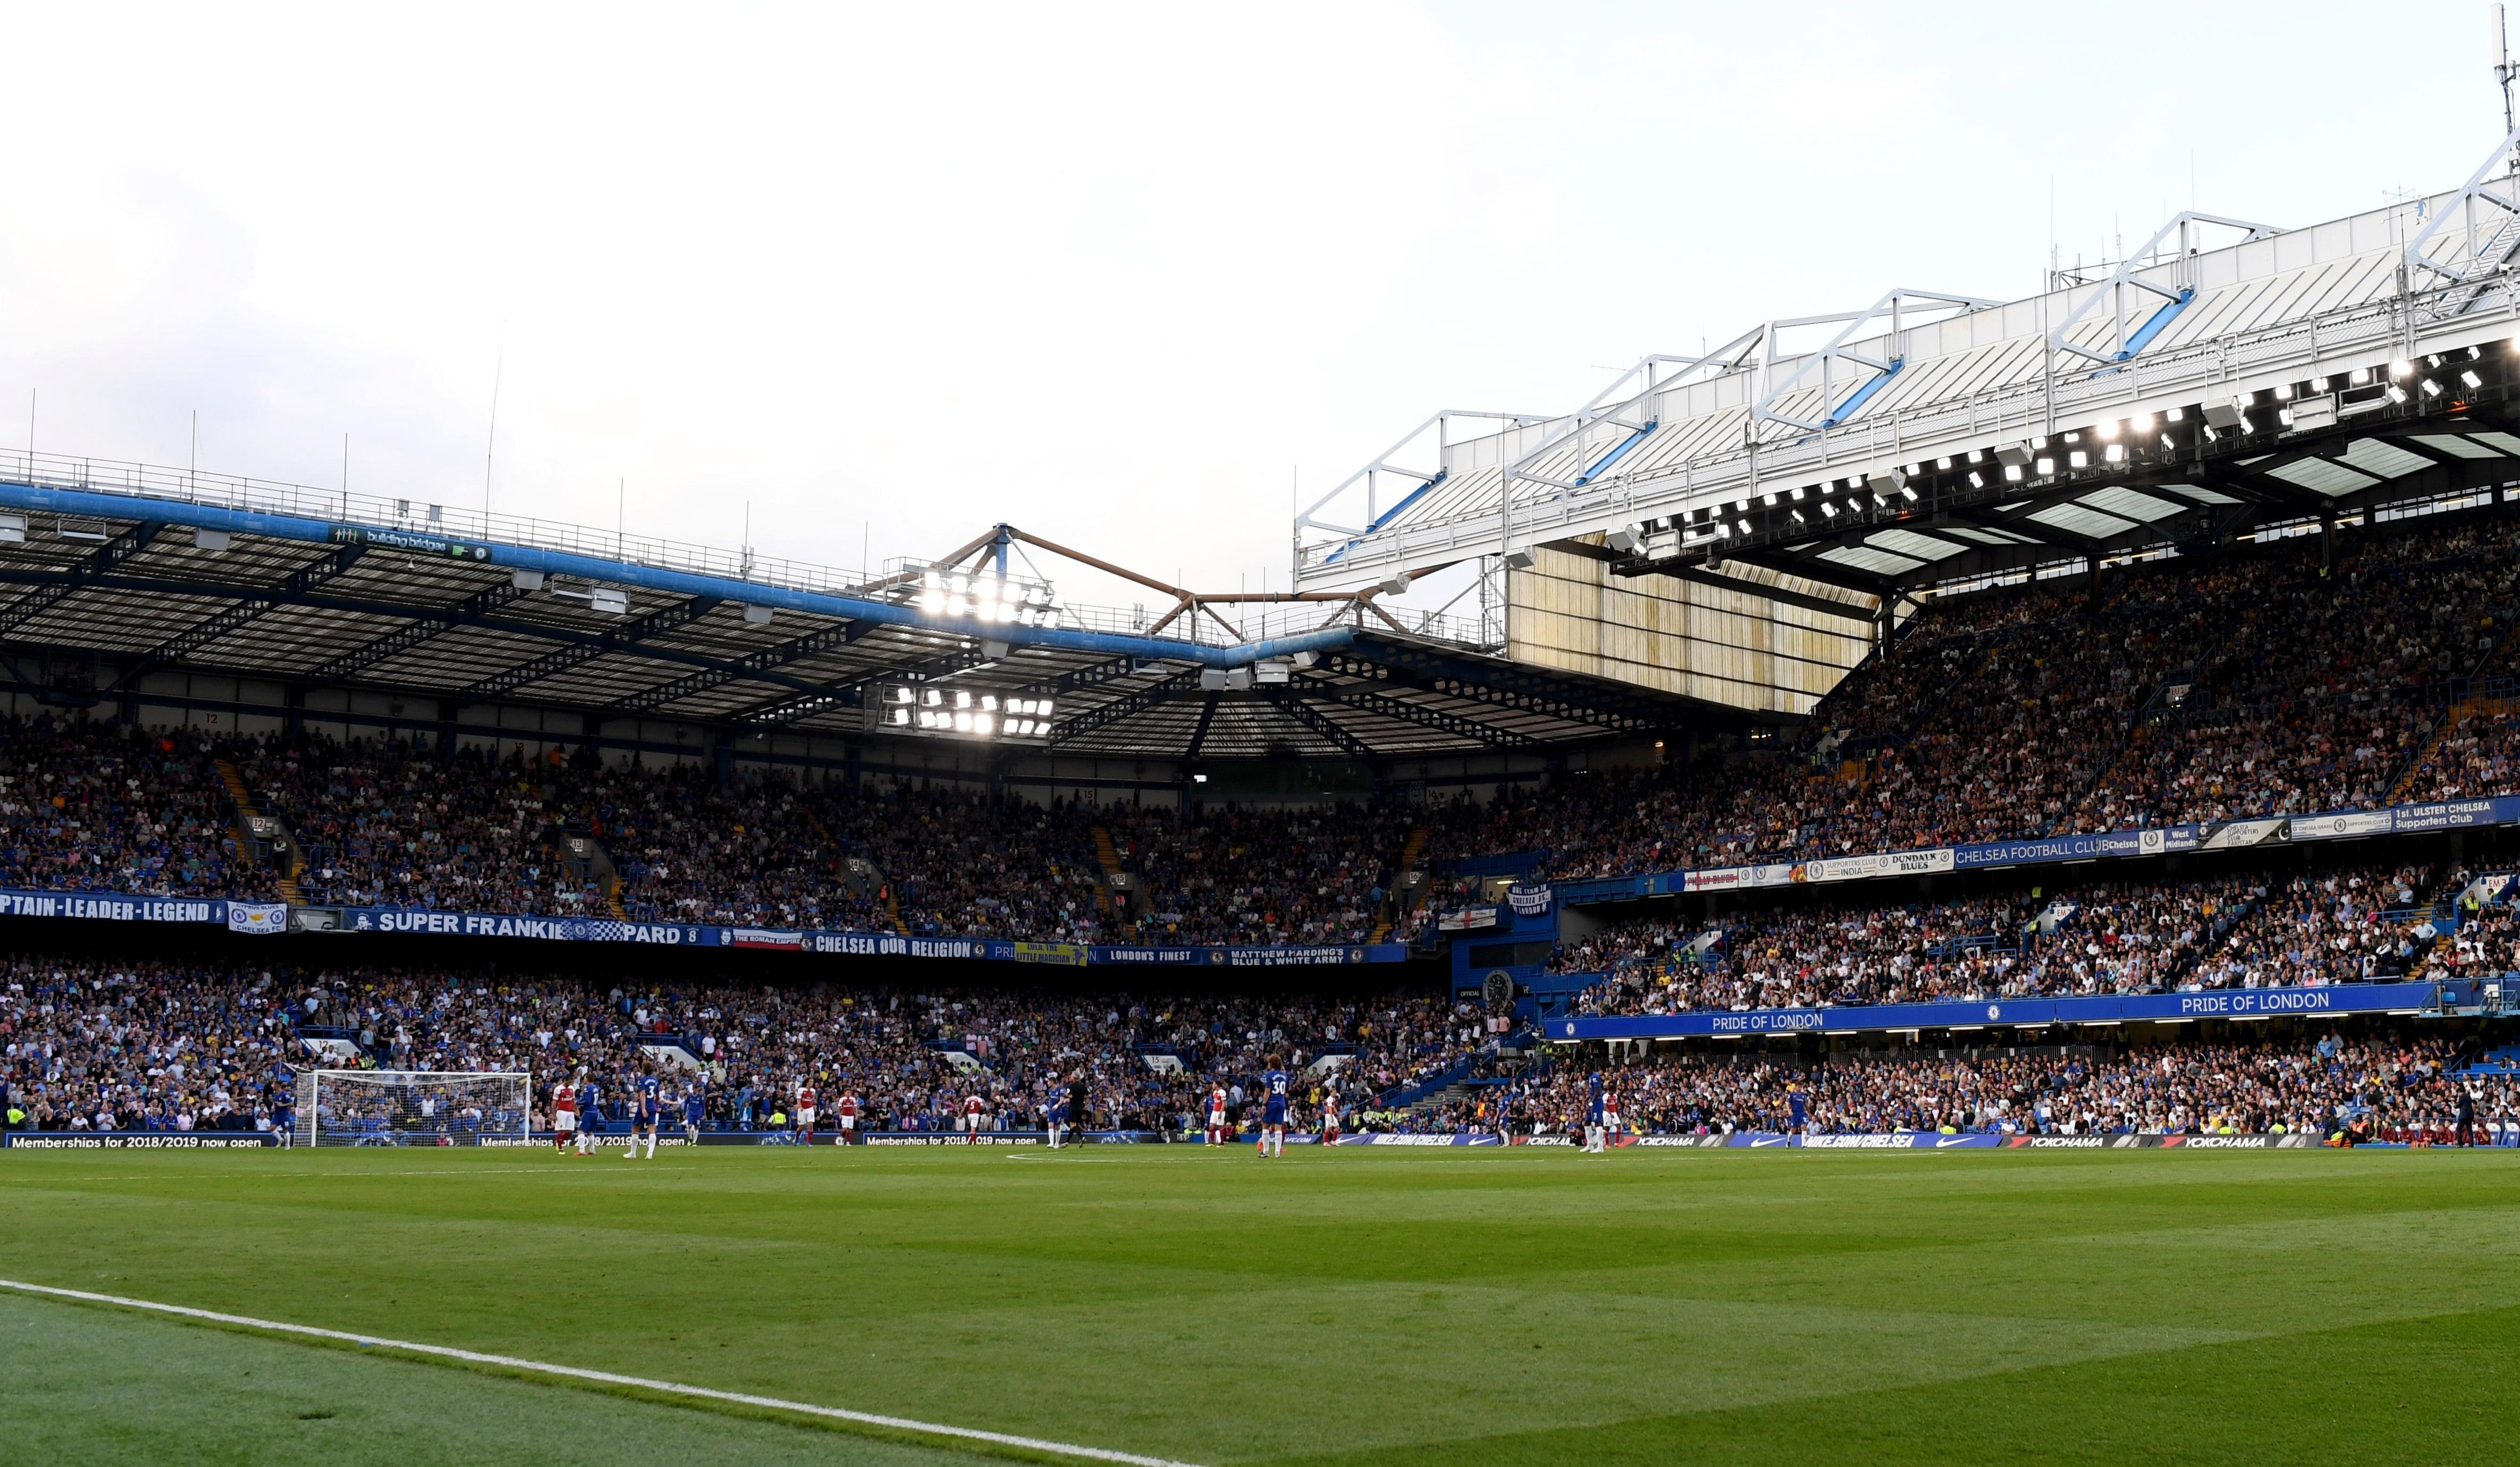 Chelsea in action at Stamford Bridge. Abramovich has previously halted plans for a new 60,000-capacity stadium